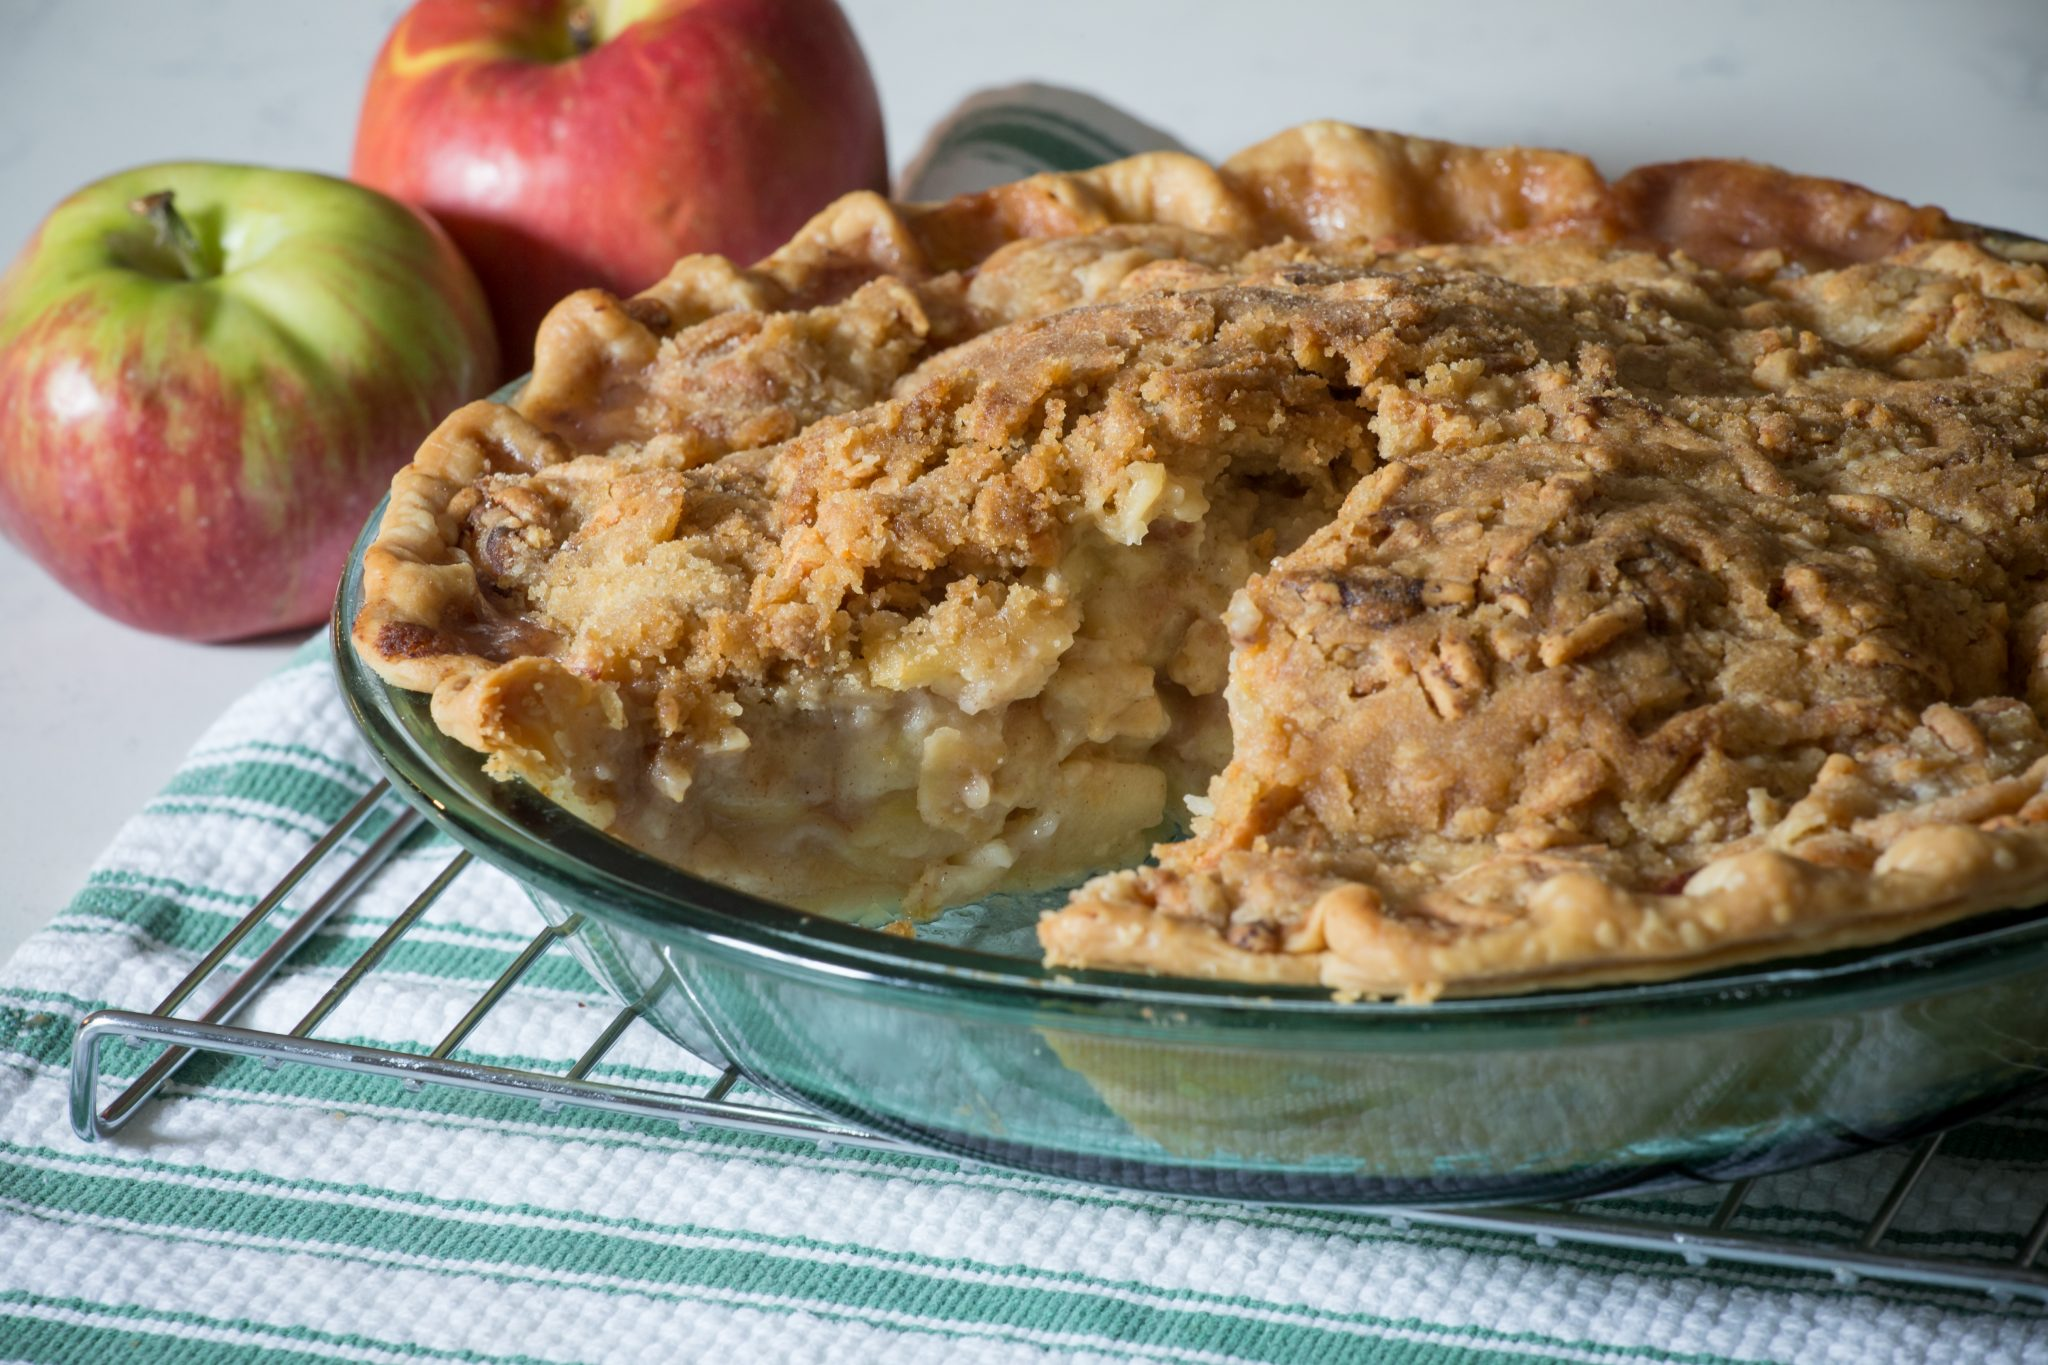 Savory Apple Pie with Cheddar